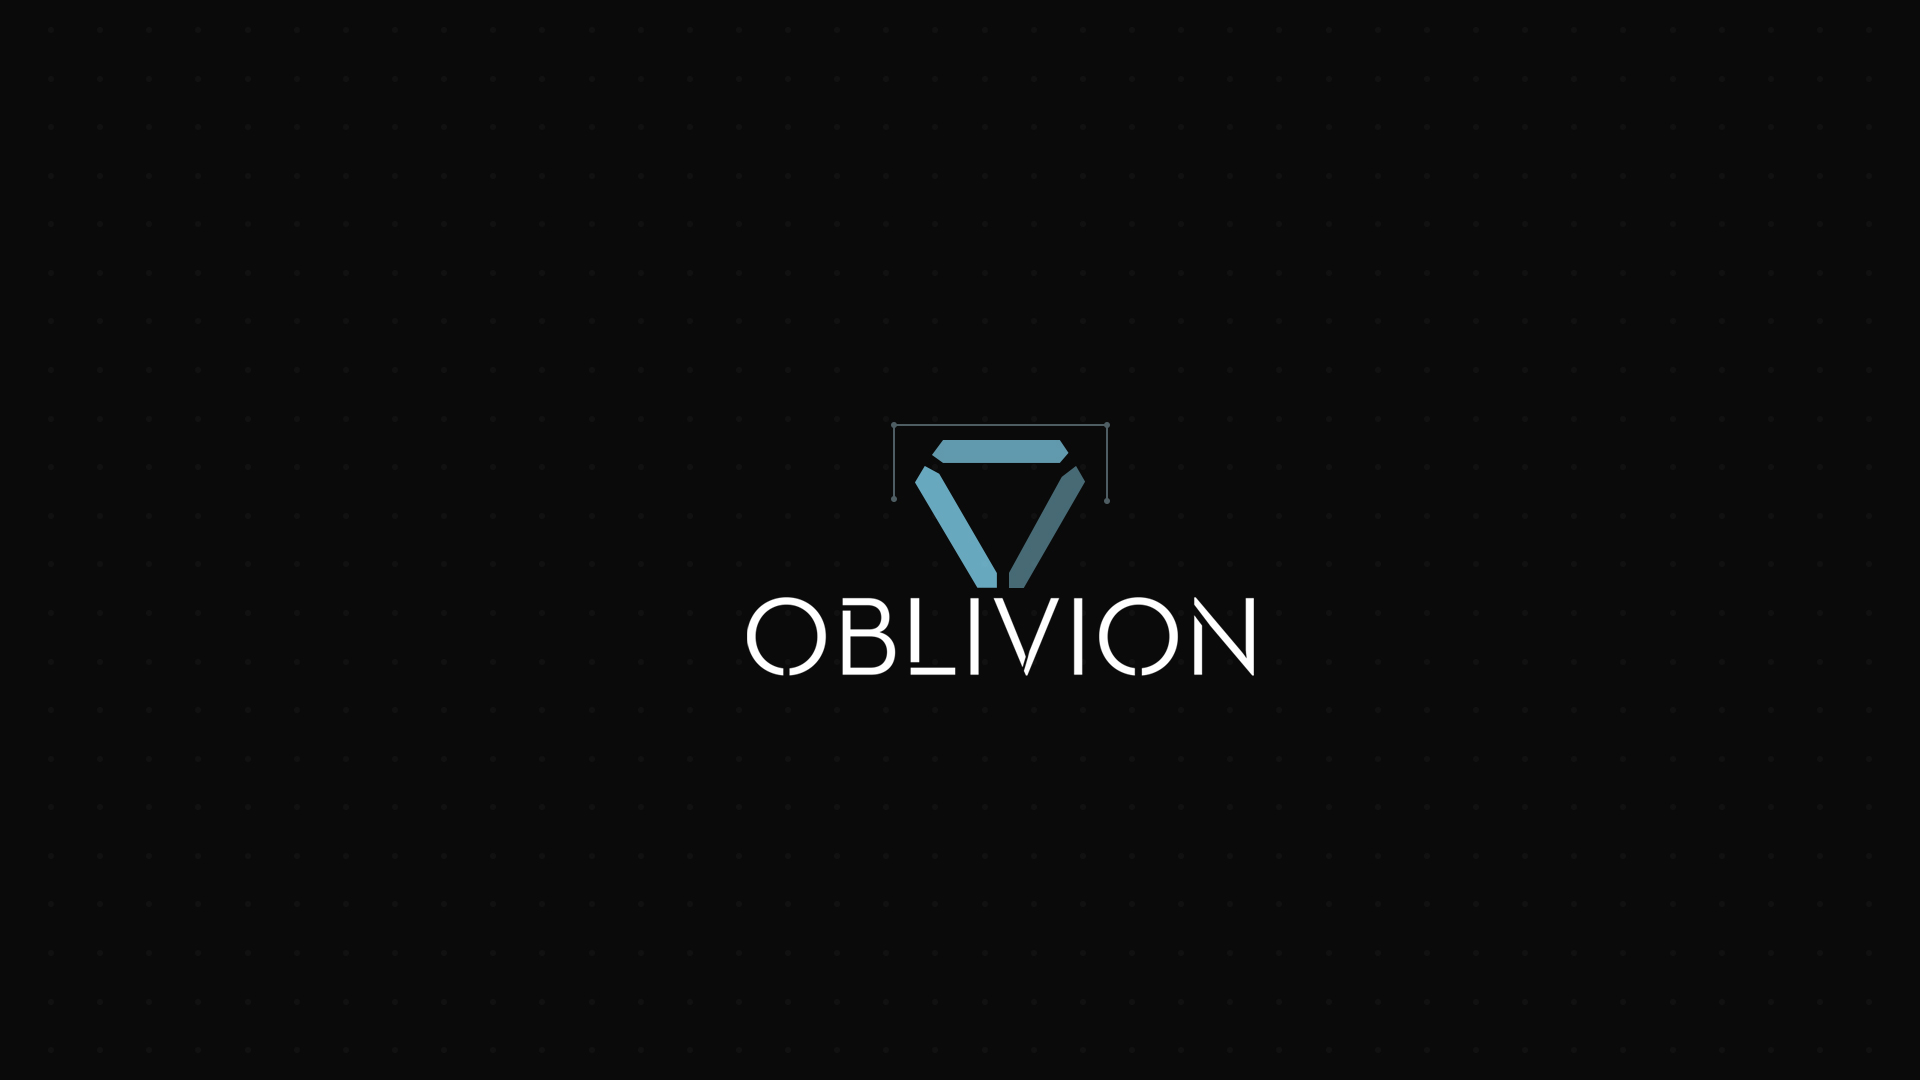 1920x1080px oblivion wallpapers - wallpapersafari